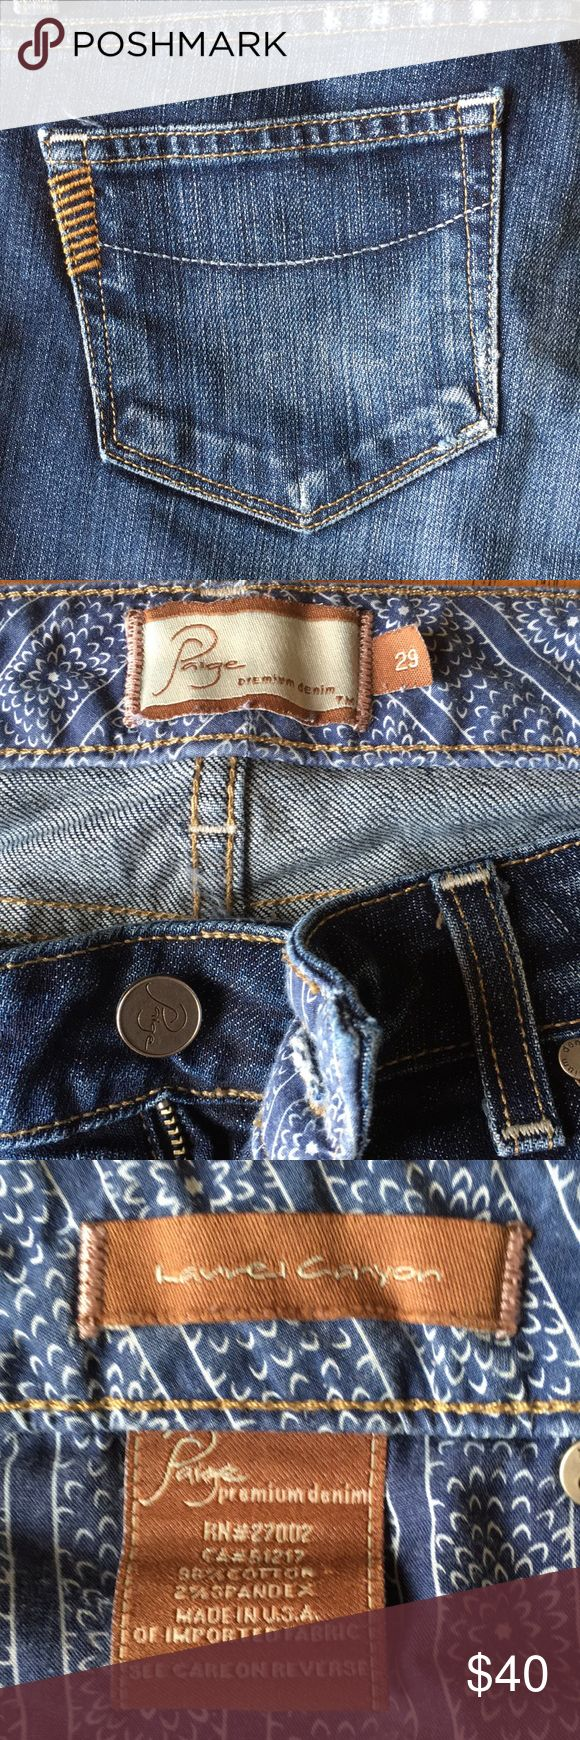 """Paige Premium Denim Laurel Canyon bootcut jeans Originally purchased at Nordstrom. Low to mid waisted. Inseam 32"""" Paige Jeans Jeans Boot Cut"""